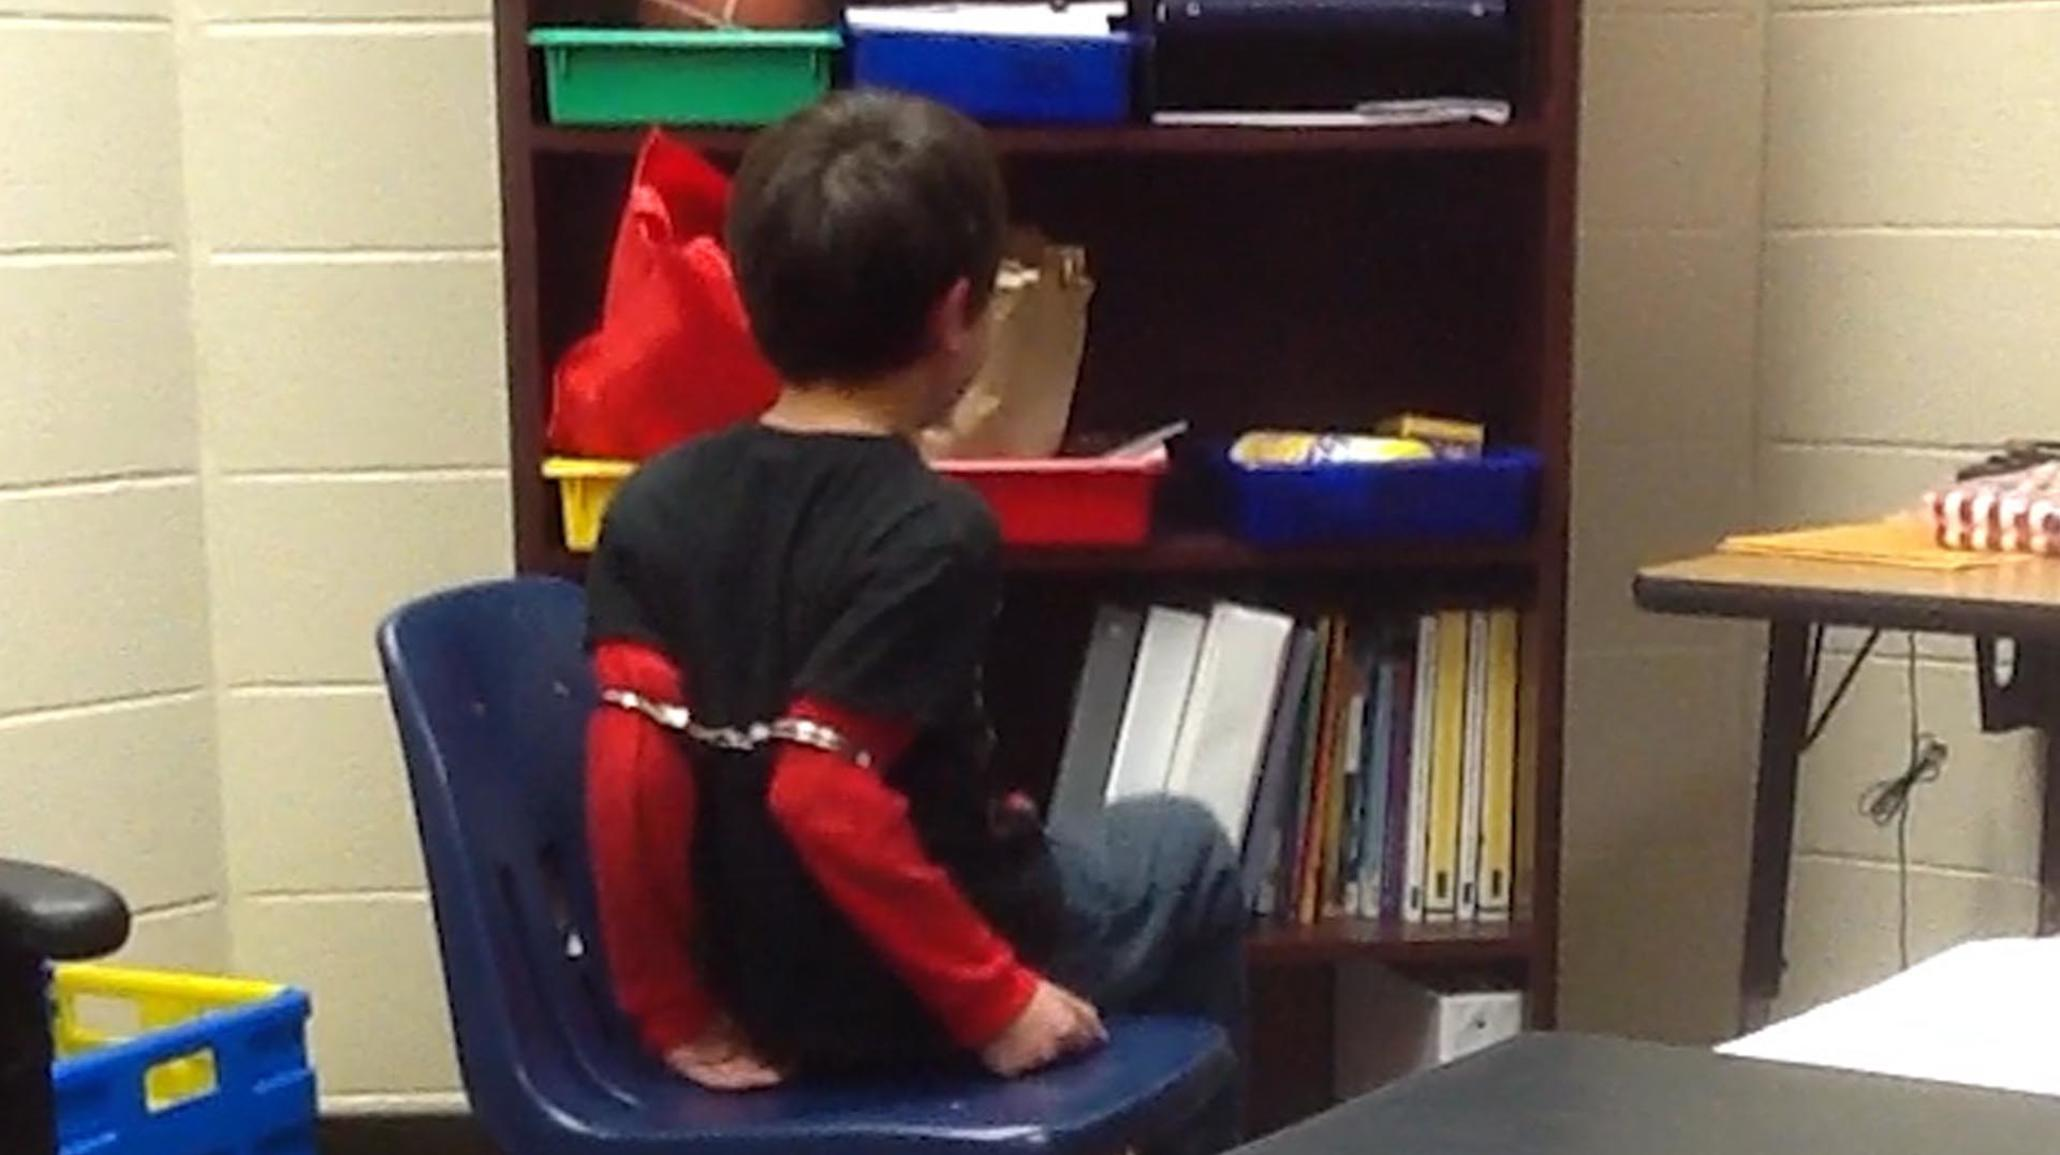 Kentucky case spotlights problem of untrained law enforcement disciplining students with disabilities: w/video